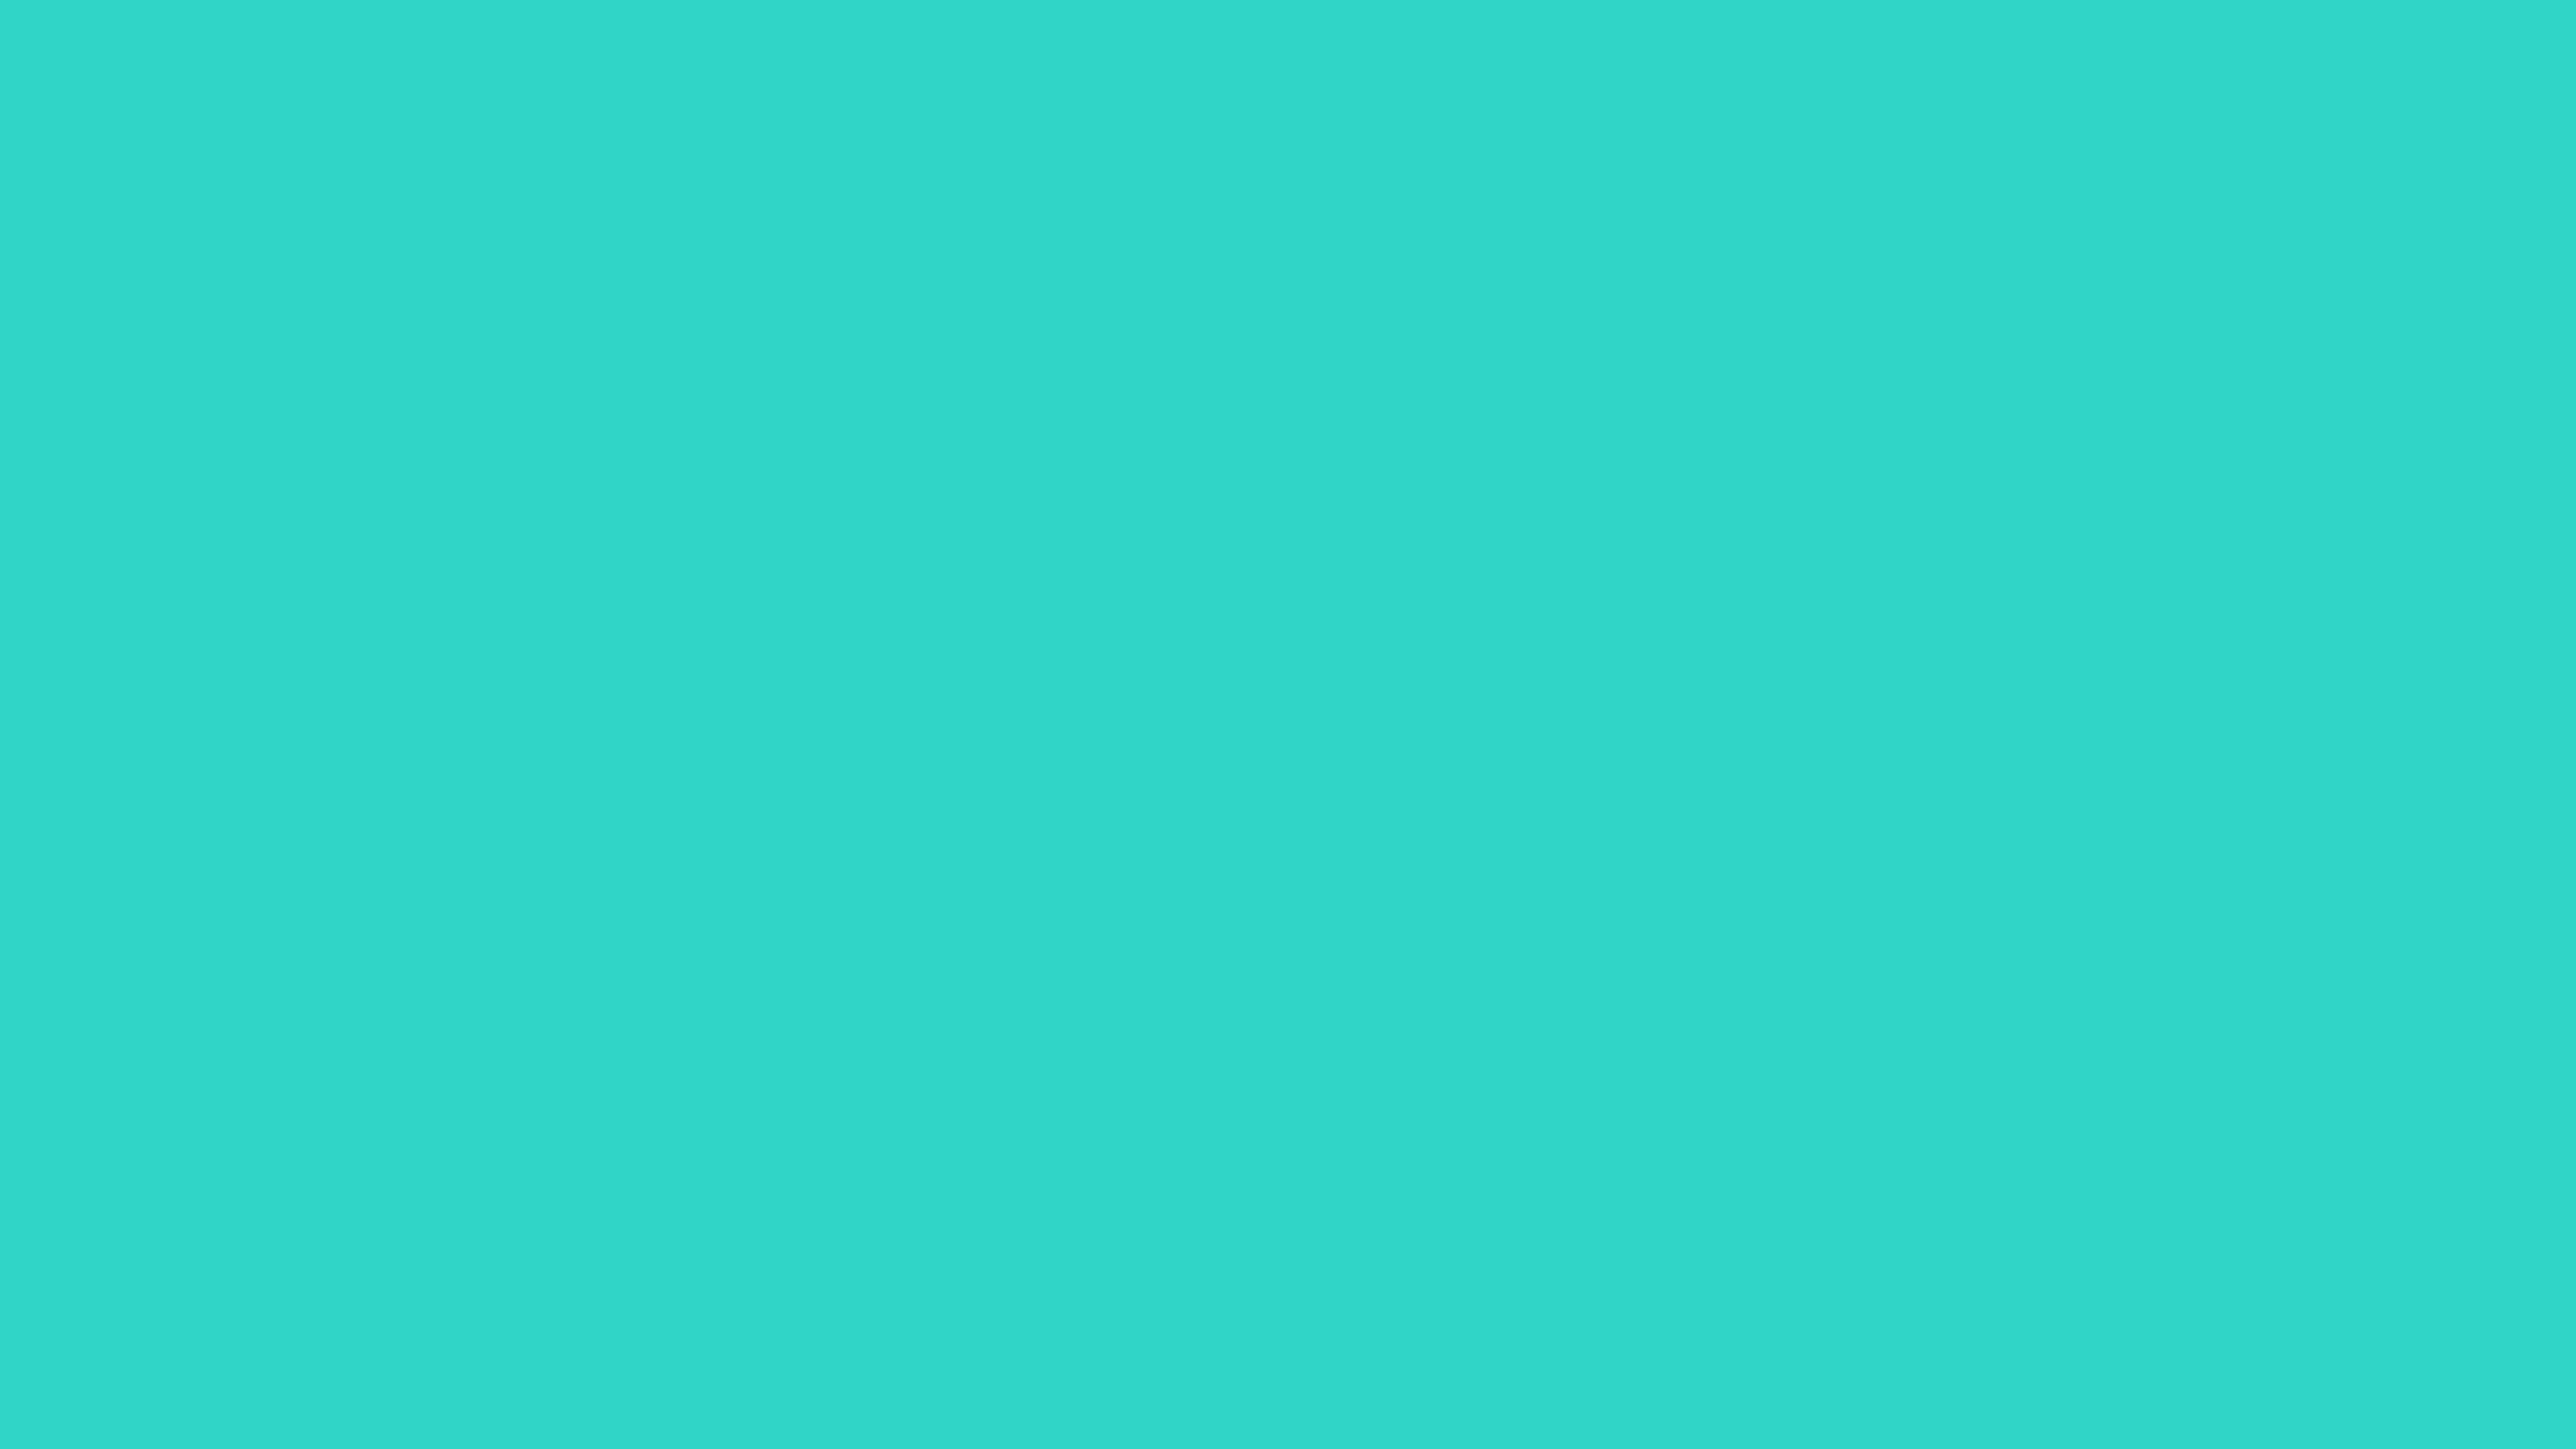 5120x2880 Turquoise Solid Color Background